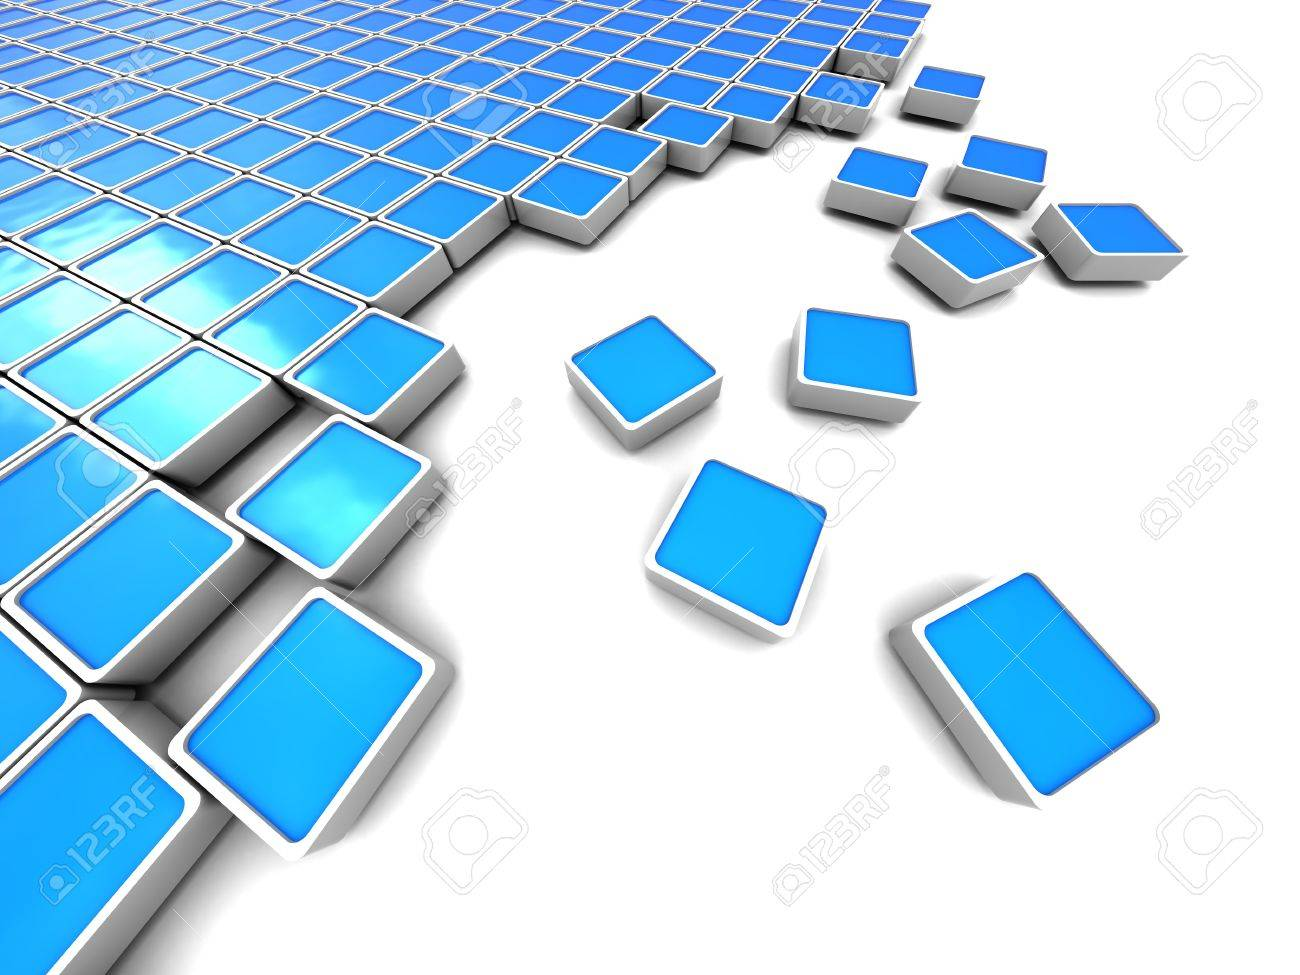 Abstract 3d Illustration Of Blue Blocks Background Stock Photo ...